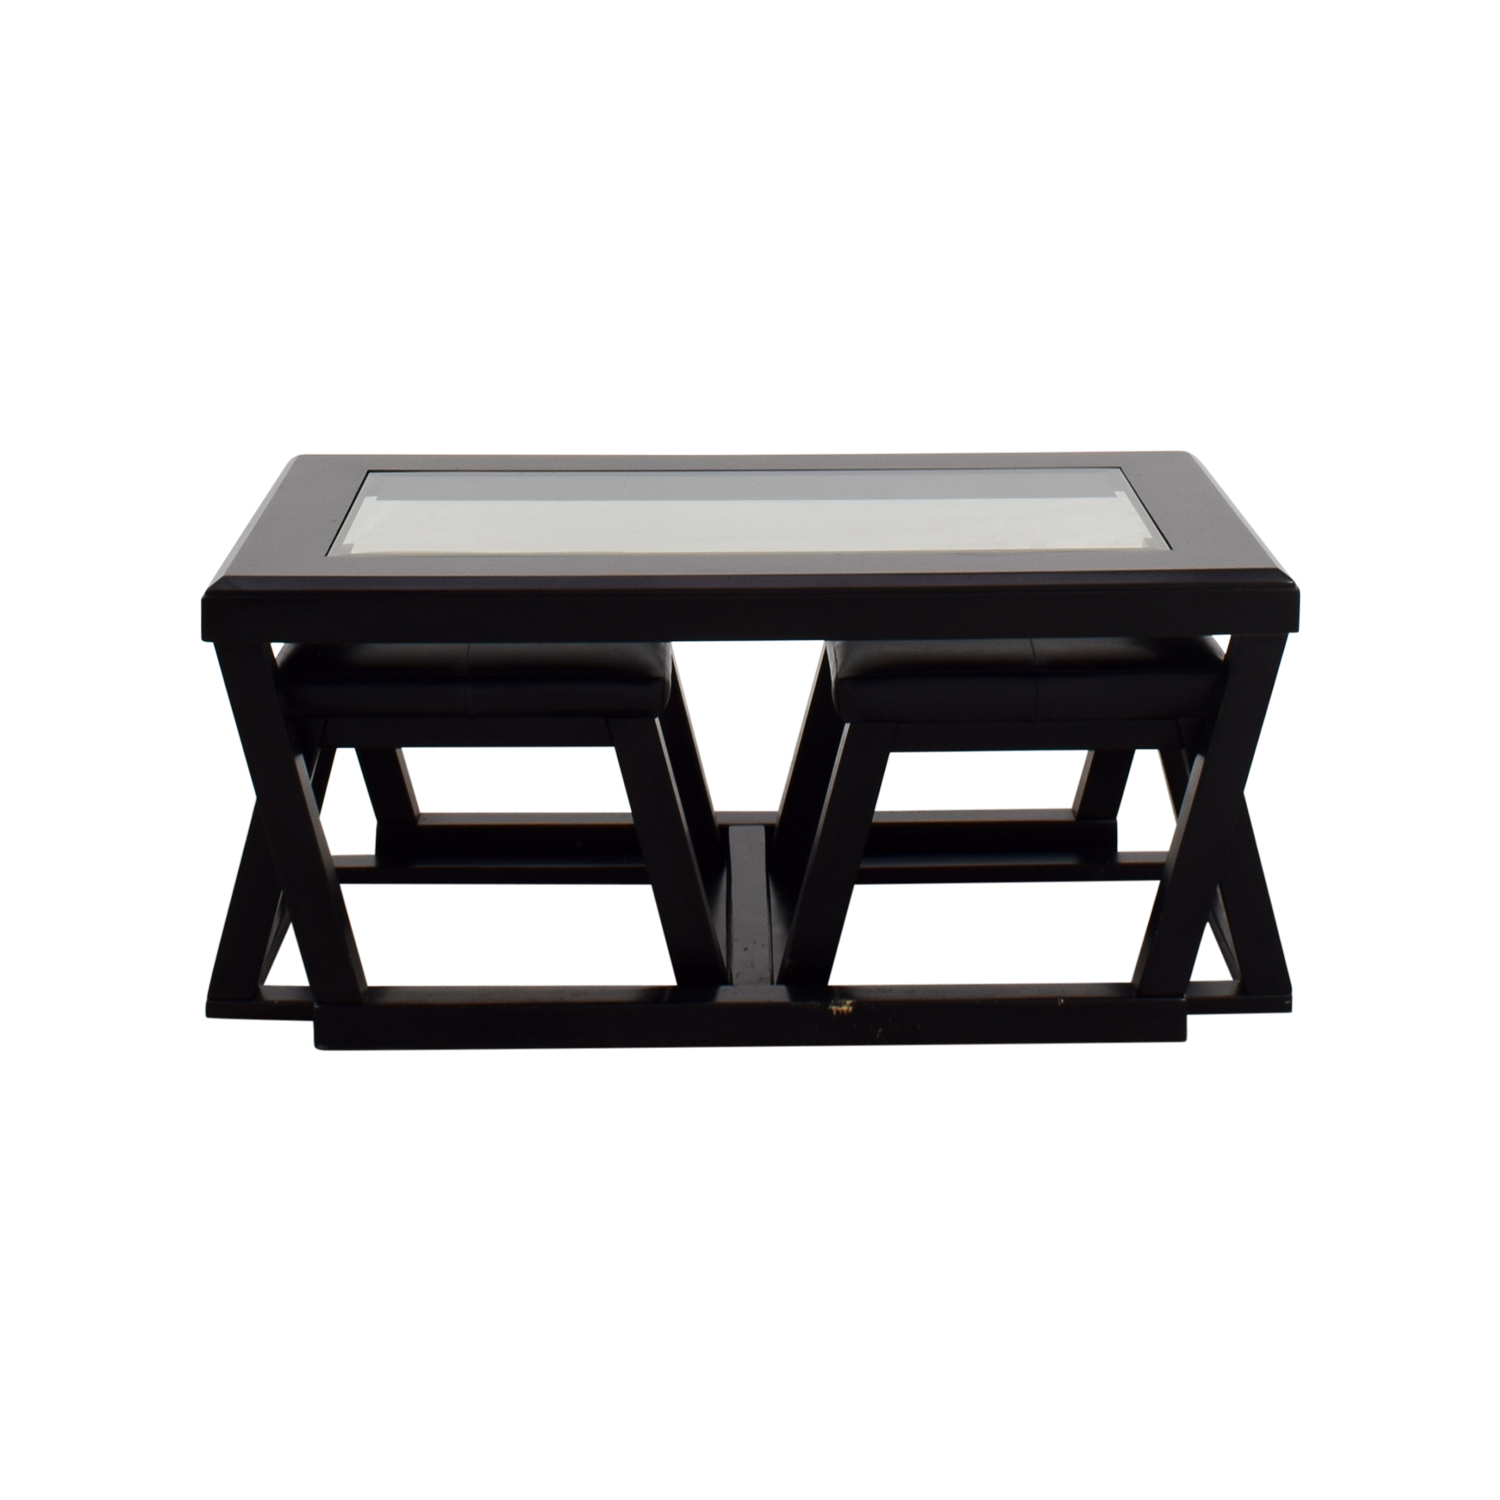 Ashley Furniture Ashley Furniture Coffee Table coupon